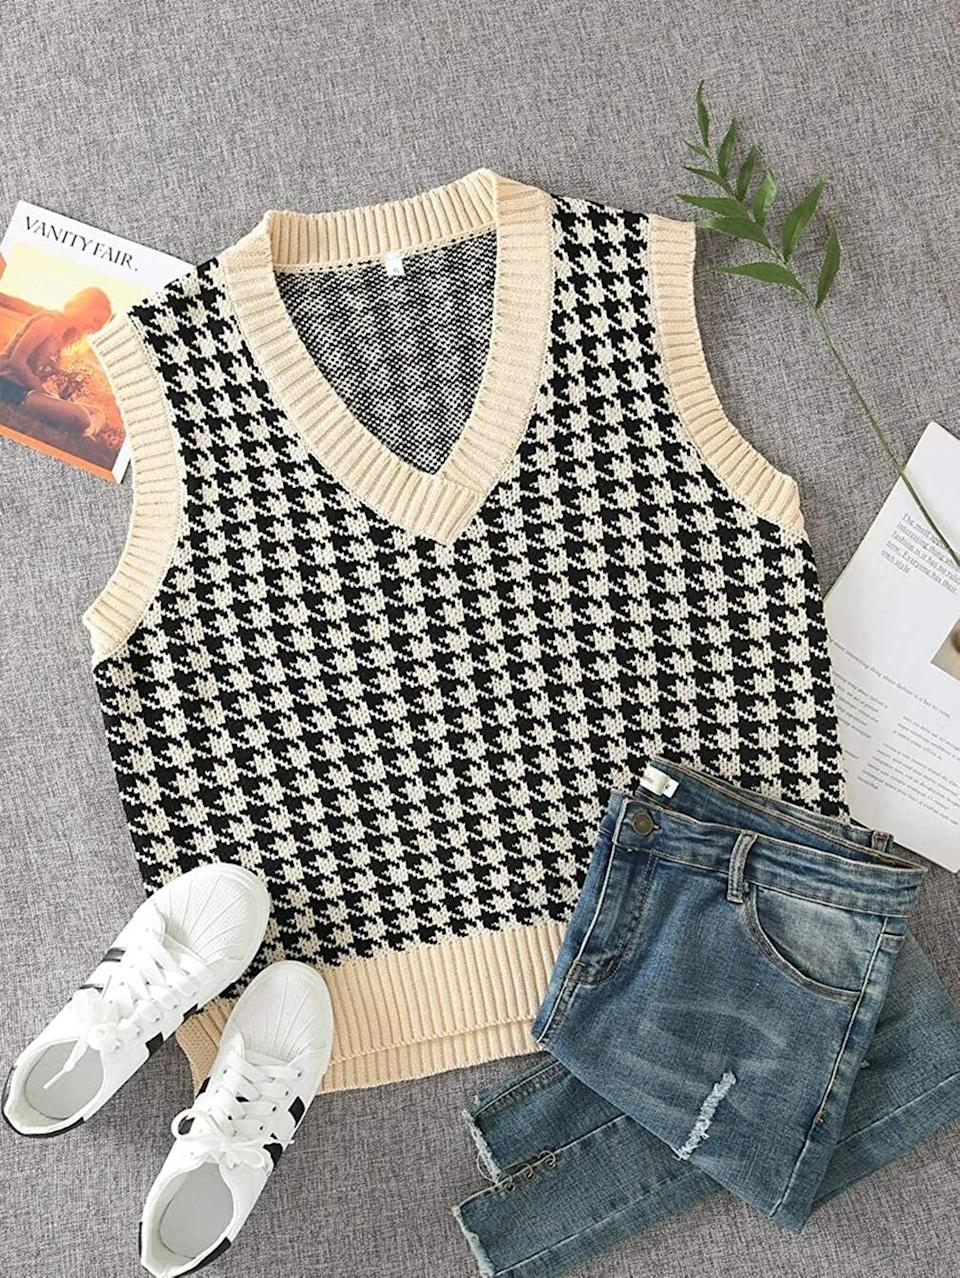 """This is the choice grandma/grandpa knit of 2021. Throw it on over a crisp button-down, and you're in business, baby.<br /><br /><strong>Promising review</strong>: """"<strong>LOVE!!! Great quality and adds so much personality to any outfit!</strong>I think the medium gave me the perfect oversized look, but I think the small would've worked as well because the sweater is naturally oversized.<strong>I bought another!</strong>"""" —<a href=""""https://www.amazon.com/gp/customer-reviews/R1Q5BUYC80EXBQ?&linkCode=ll2&tag=huffpost-bfsyndication-20&linkId=25e51a404102ca3d683d5d626869a2b5&language=en_US&ref_=as_li_ss_tl"""" target=""""_blank"""" rel=""""nofollow noopener noreferrer"""" data-skimlinks-tracking=""""5876227"""" data-vars-affiliate=""""Amazon"""" data-vars-href=""""https://www.amazon.com/gp/customer-reviews/R1Q5BUYC80EXBQ?tag=bfchelsea-20&ascsubtag=5876227%2C7%2C35%2Cmobile_web%2C0%2C0%2C16401296"""" data-vars-keywords=""""cleaning,fast fashion"""" data-vars-link-id=""""16401296"""" data-vars-price="""""""" data-vars-product-id=""""20980979"""" data-vars-product-img="""""""" data-vars-product-title="""""""" data-vars-retailers=""""Amazon"""">Amazon Customer</a><br /><br /><a href=""""https://www.amazon.com/Sdencin-Houndstooth-Sleeveless-Waistcoat-Pullover/dp/B08YVPTFC9?&linkCode=ll1&tag=huffpost-bfsyndication-20&linkId=88b9e5fcd5afc147479add5c31853f3f&language=en_US&ref_=as_li_ss_tl"""" target=""""_blank"""" rel=""""noopener noreferrer""""><strong>Get it from Amazon for$16.49(available in sizes S-L and in nine colors).</strong></a>"""